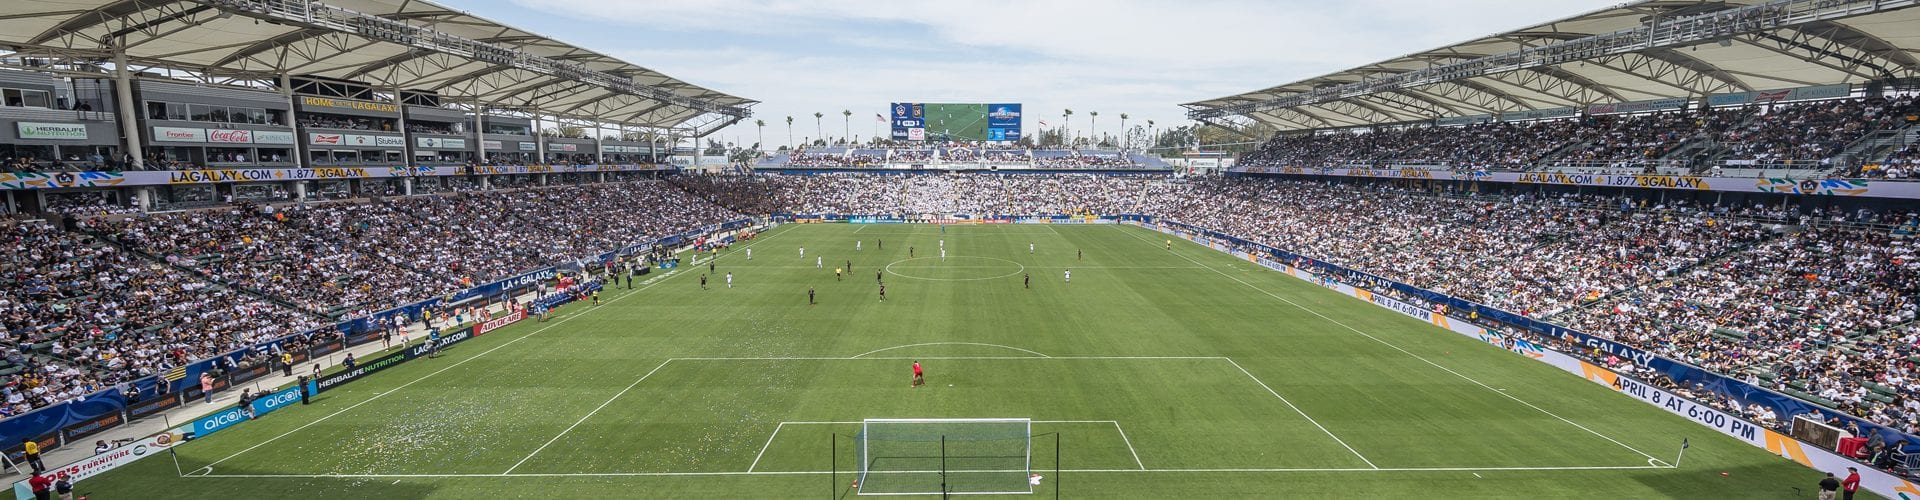 Soccer Fans' Tickets Abruptly Cancelled Ahead of LA Galaxy, LAFC Game